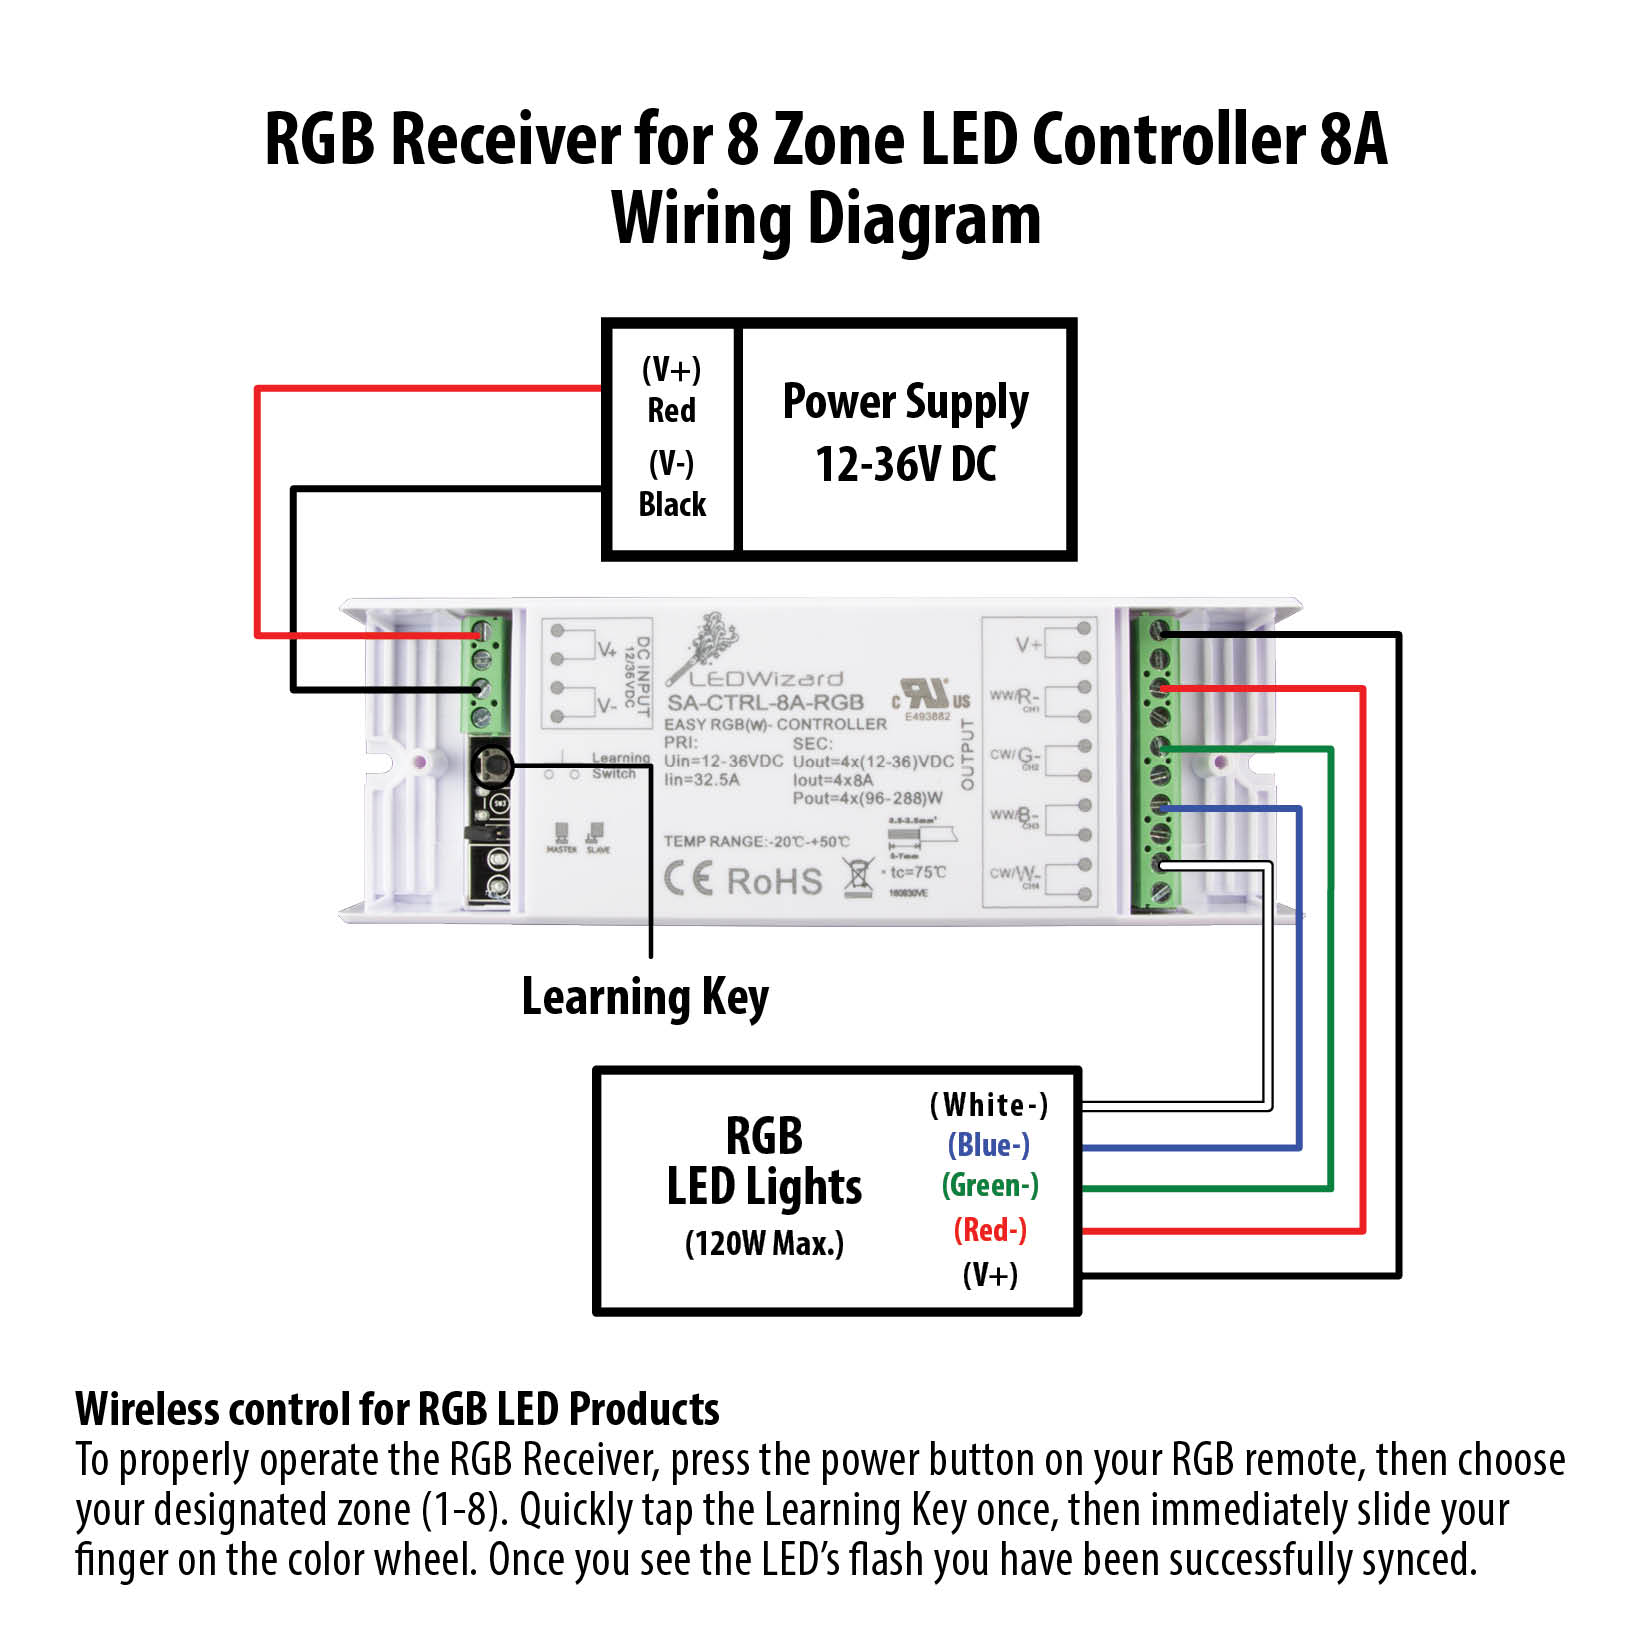 Receiver for 8 Zone LED Controller 8A